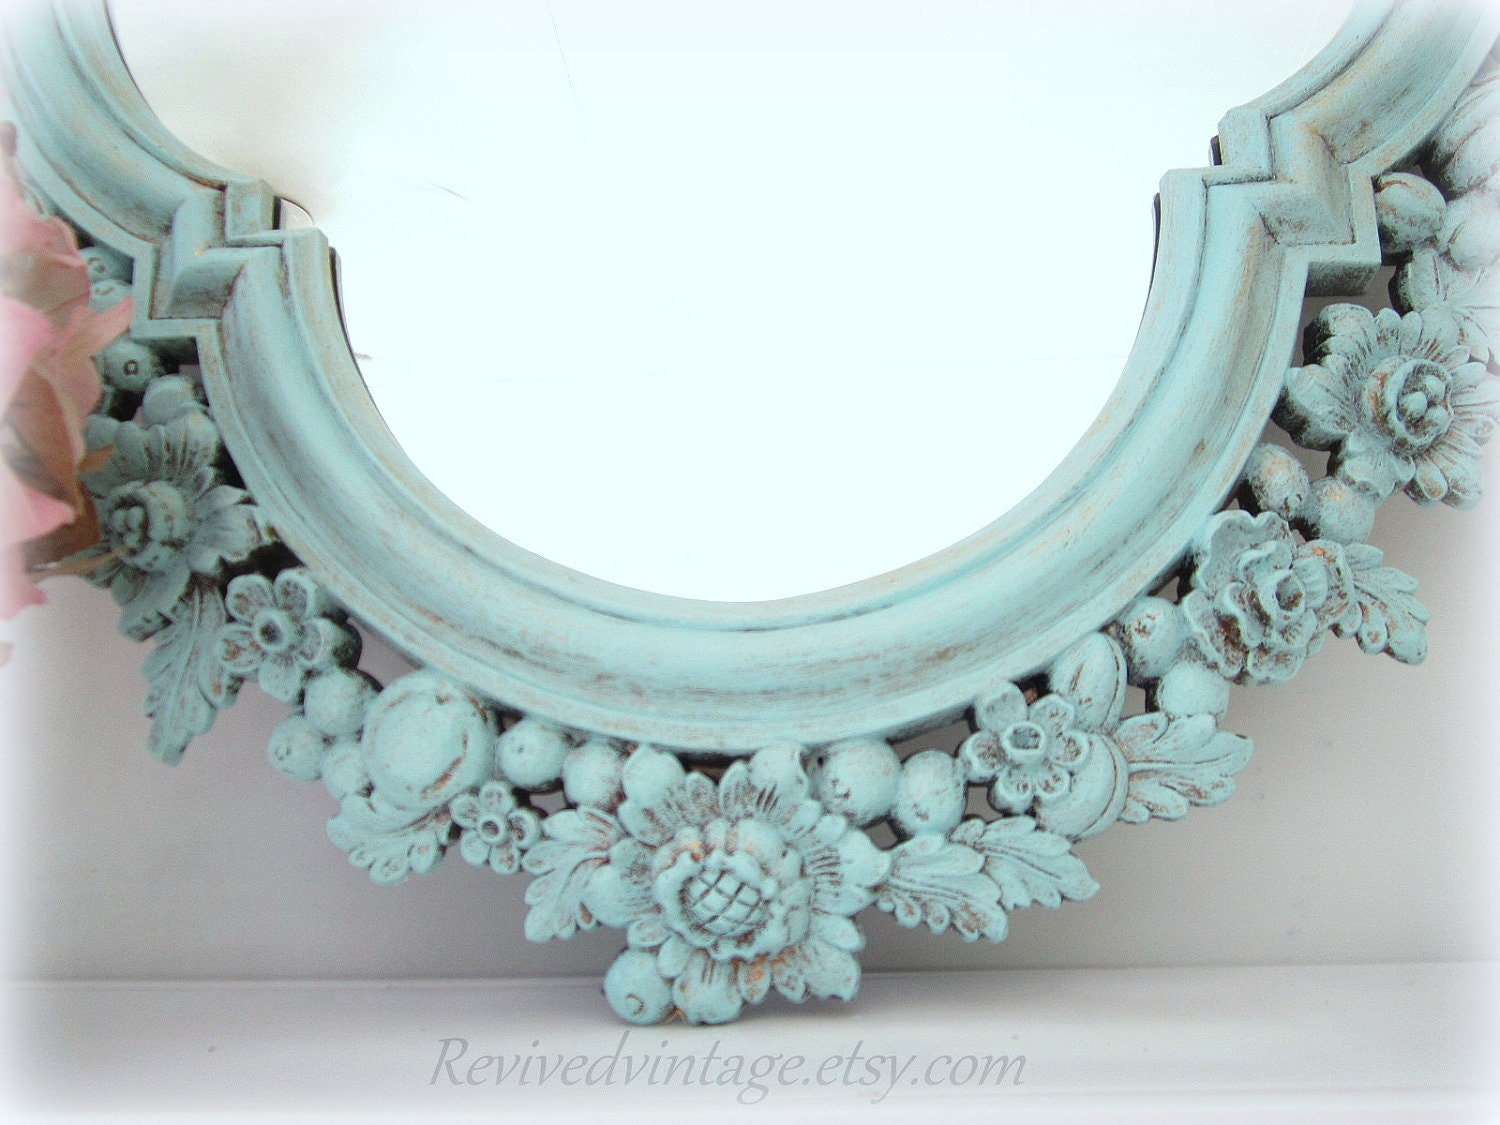 Decorative vintage mirrors for sale large mirror shabby chic for Large wall mirrors for sale